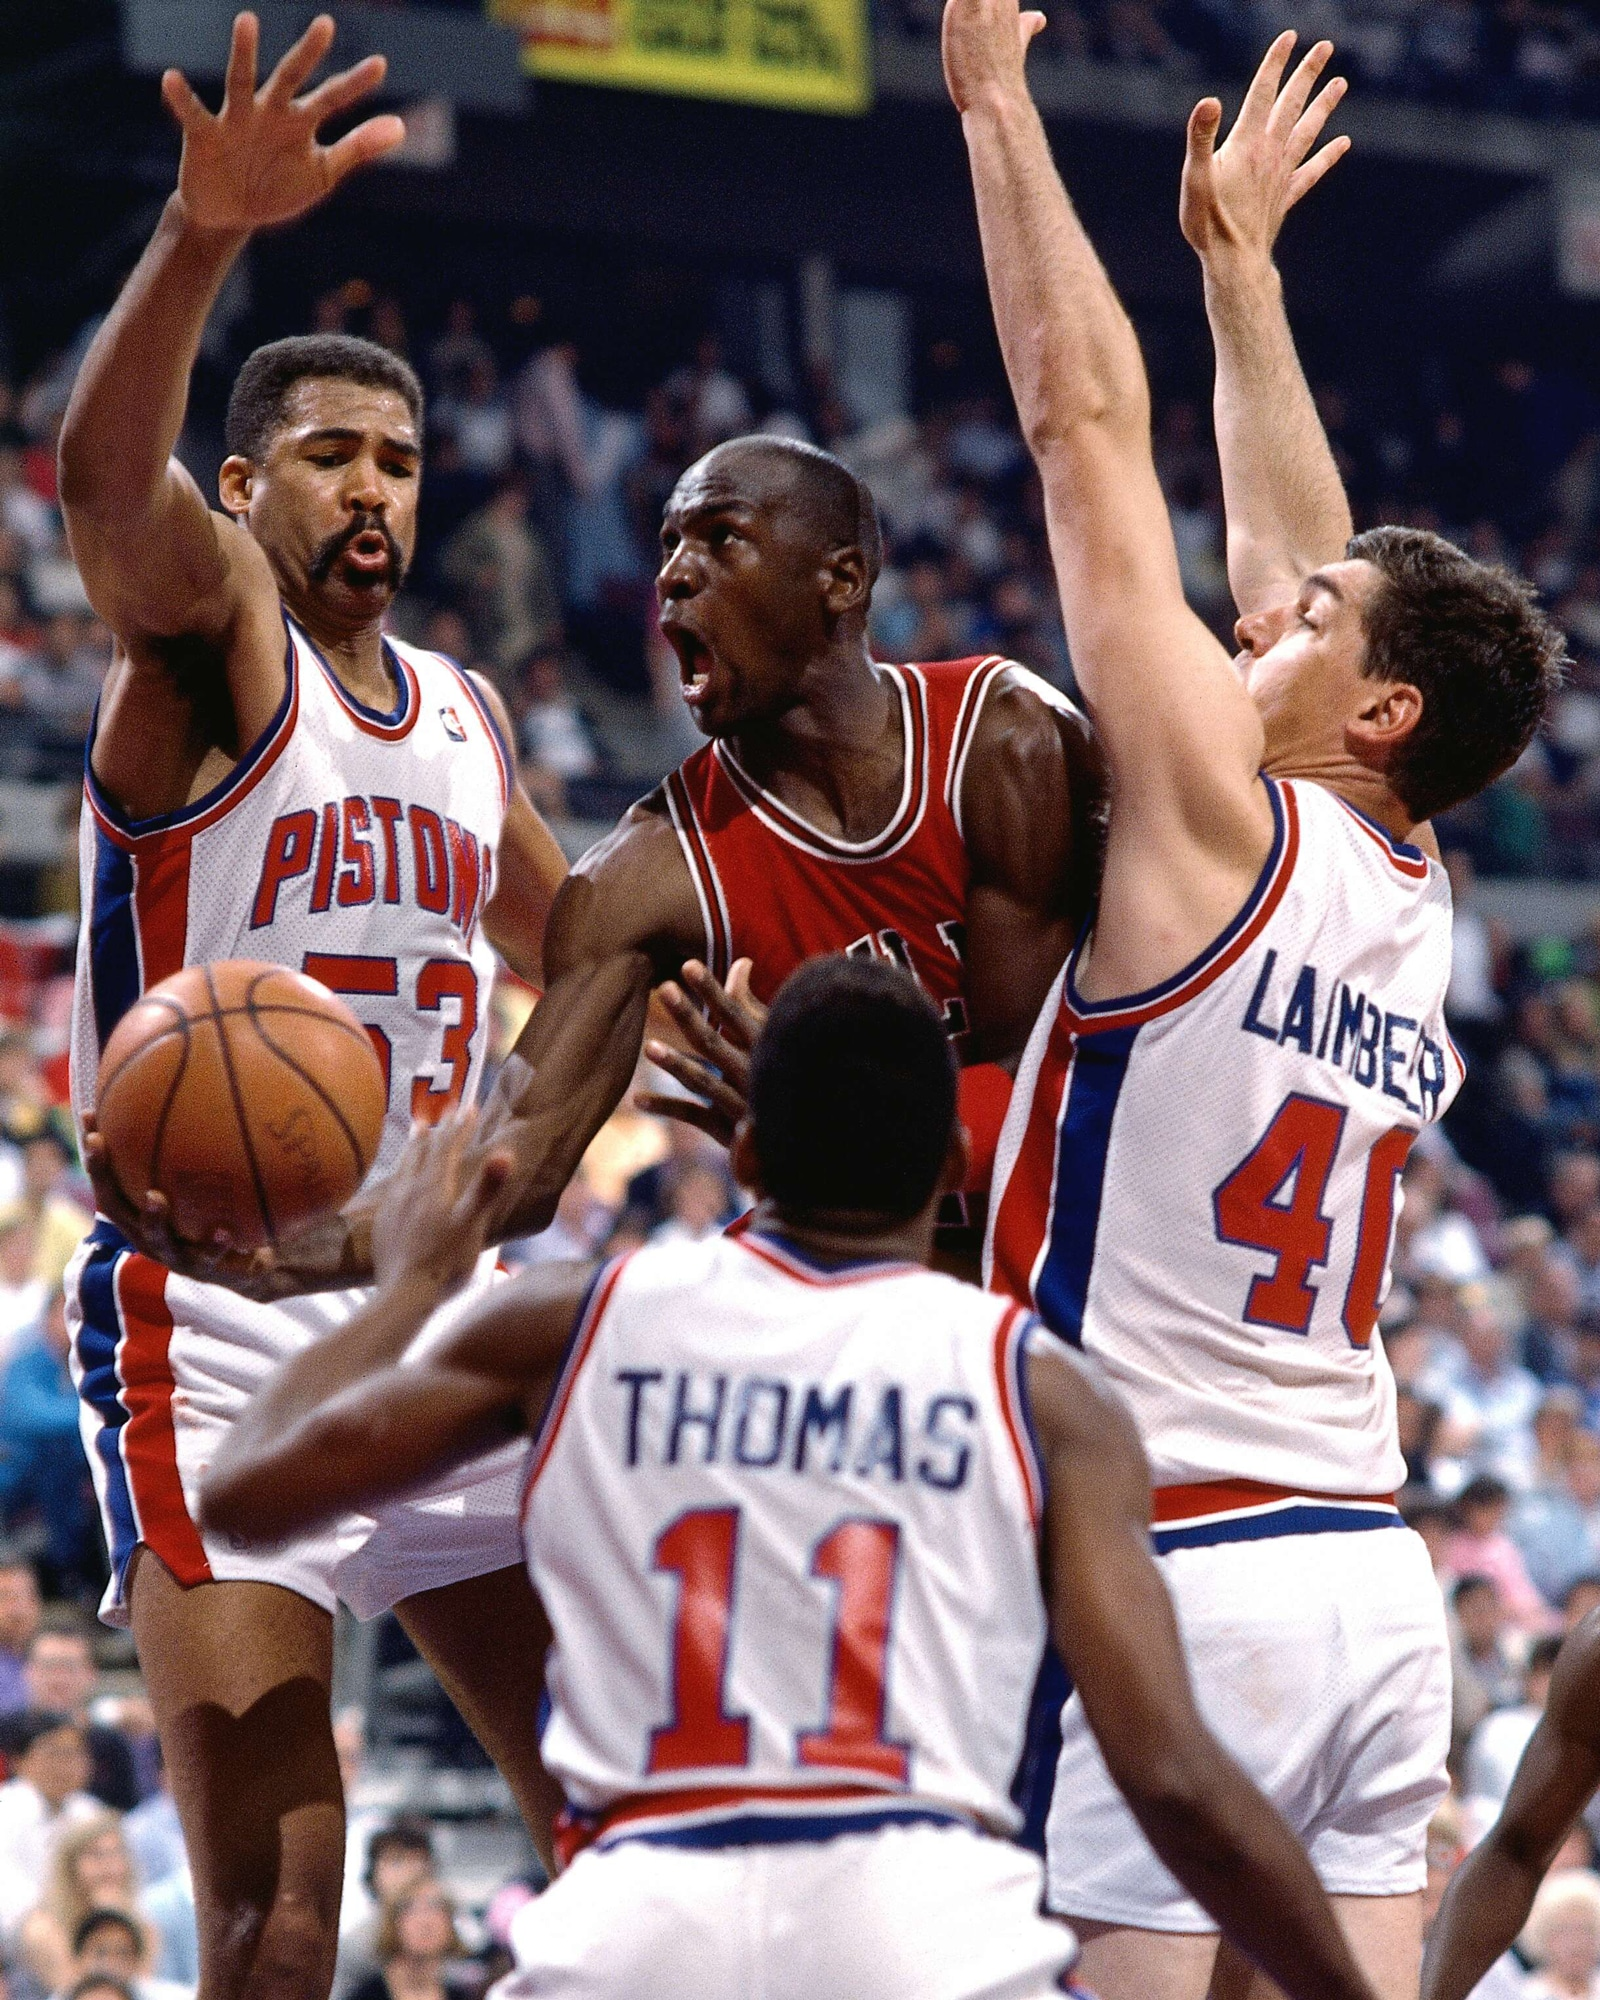 The Jordan Rules were born in the 1989 Eastern Conference Finals.